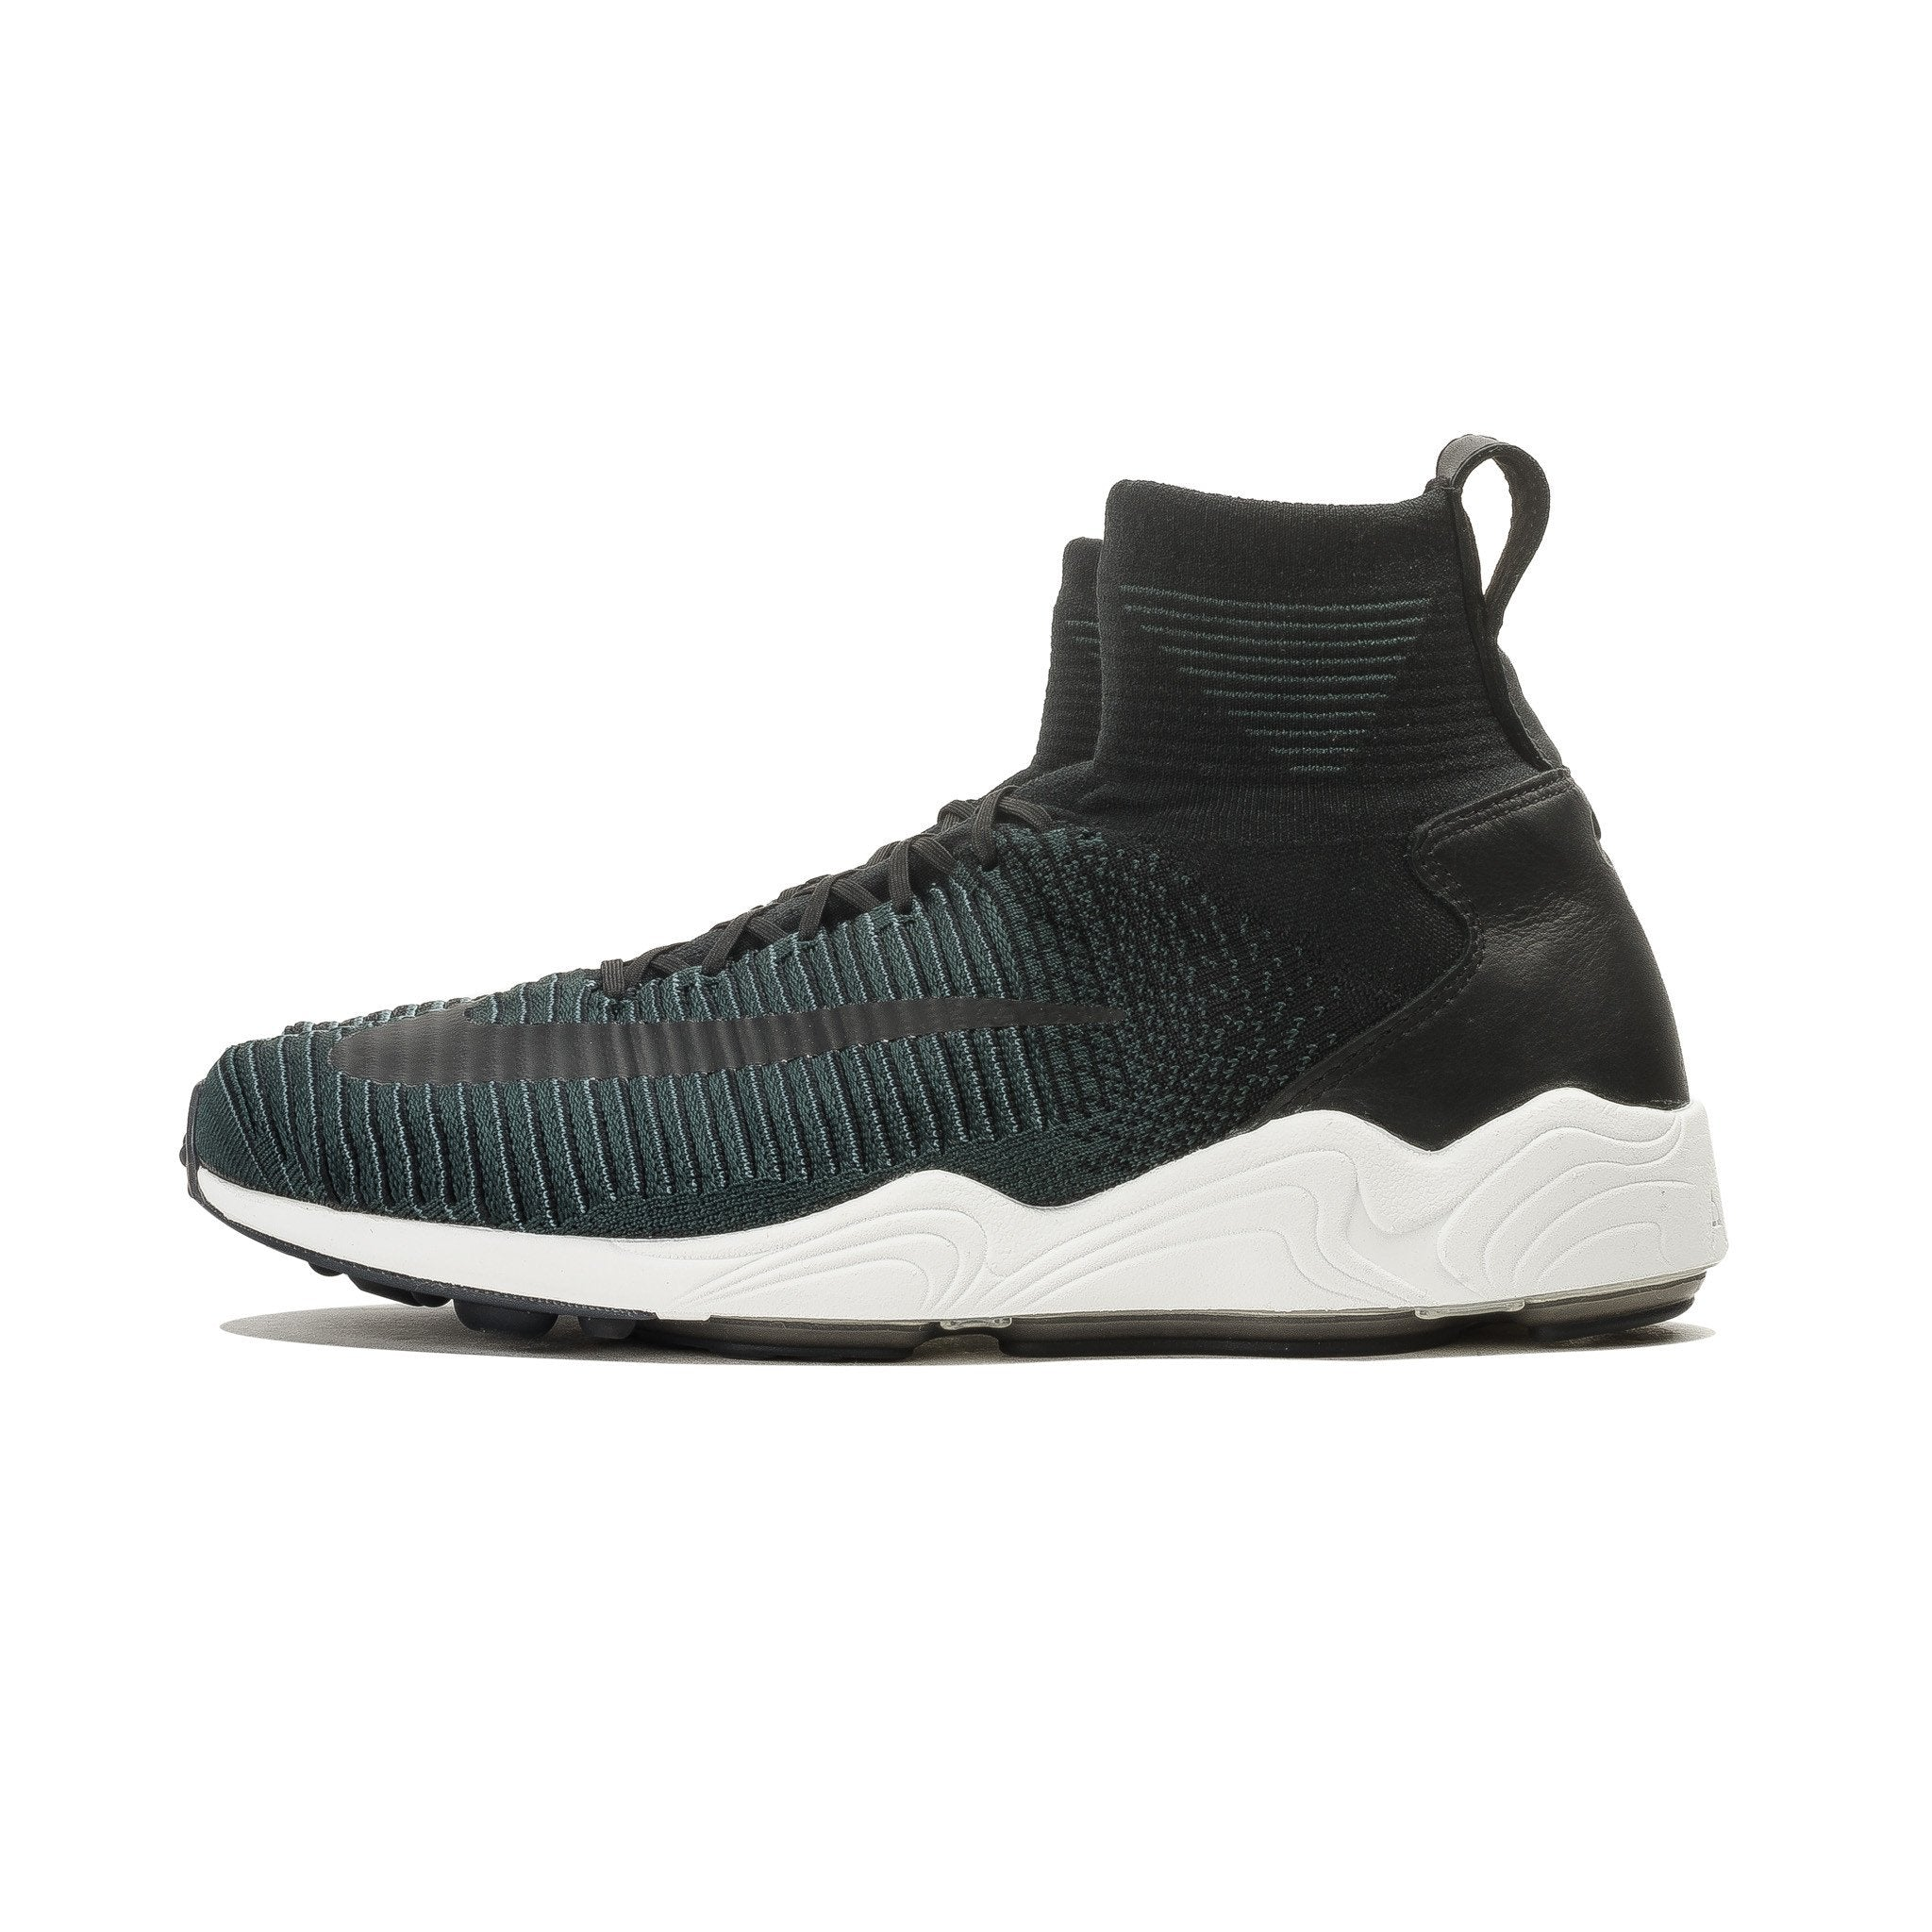 7e3190aeac54 ... Zoom Mercurial XI FK FC 852616-001 Mens Shoes - Nike ...